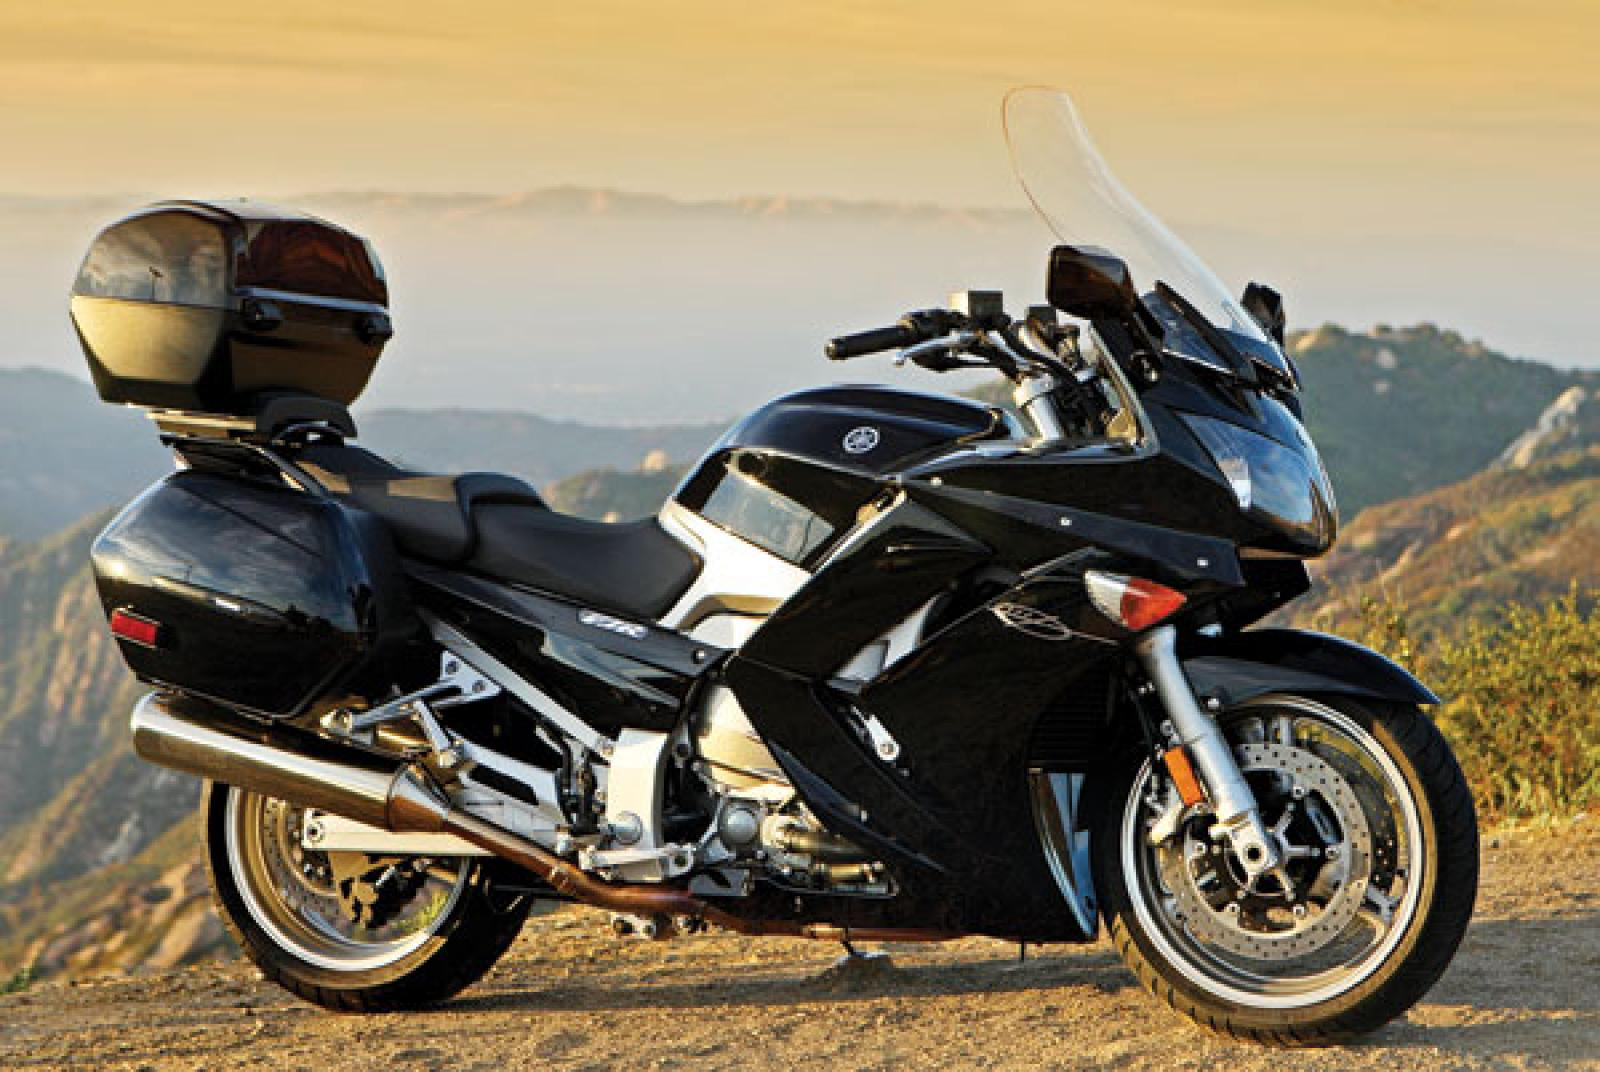 2008 yamaha fjr 1300 a moto zombdrive com. Black Bedroom Furniture Sets. Home Design Ideas